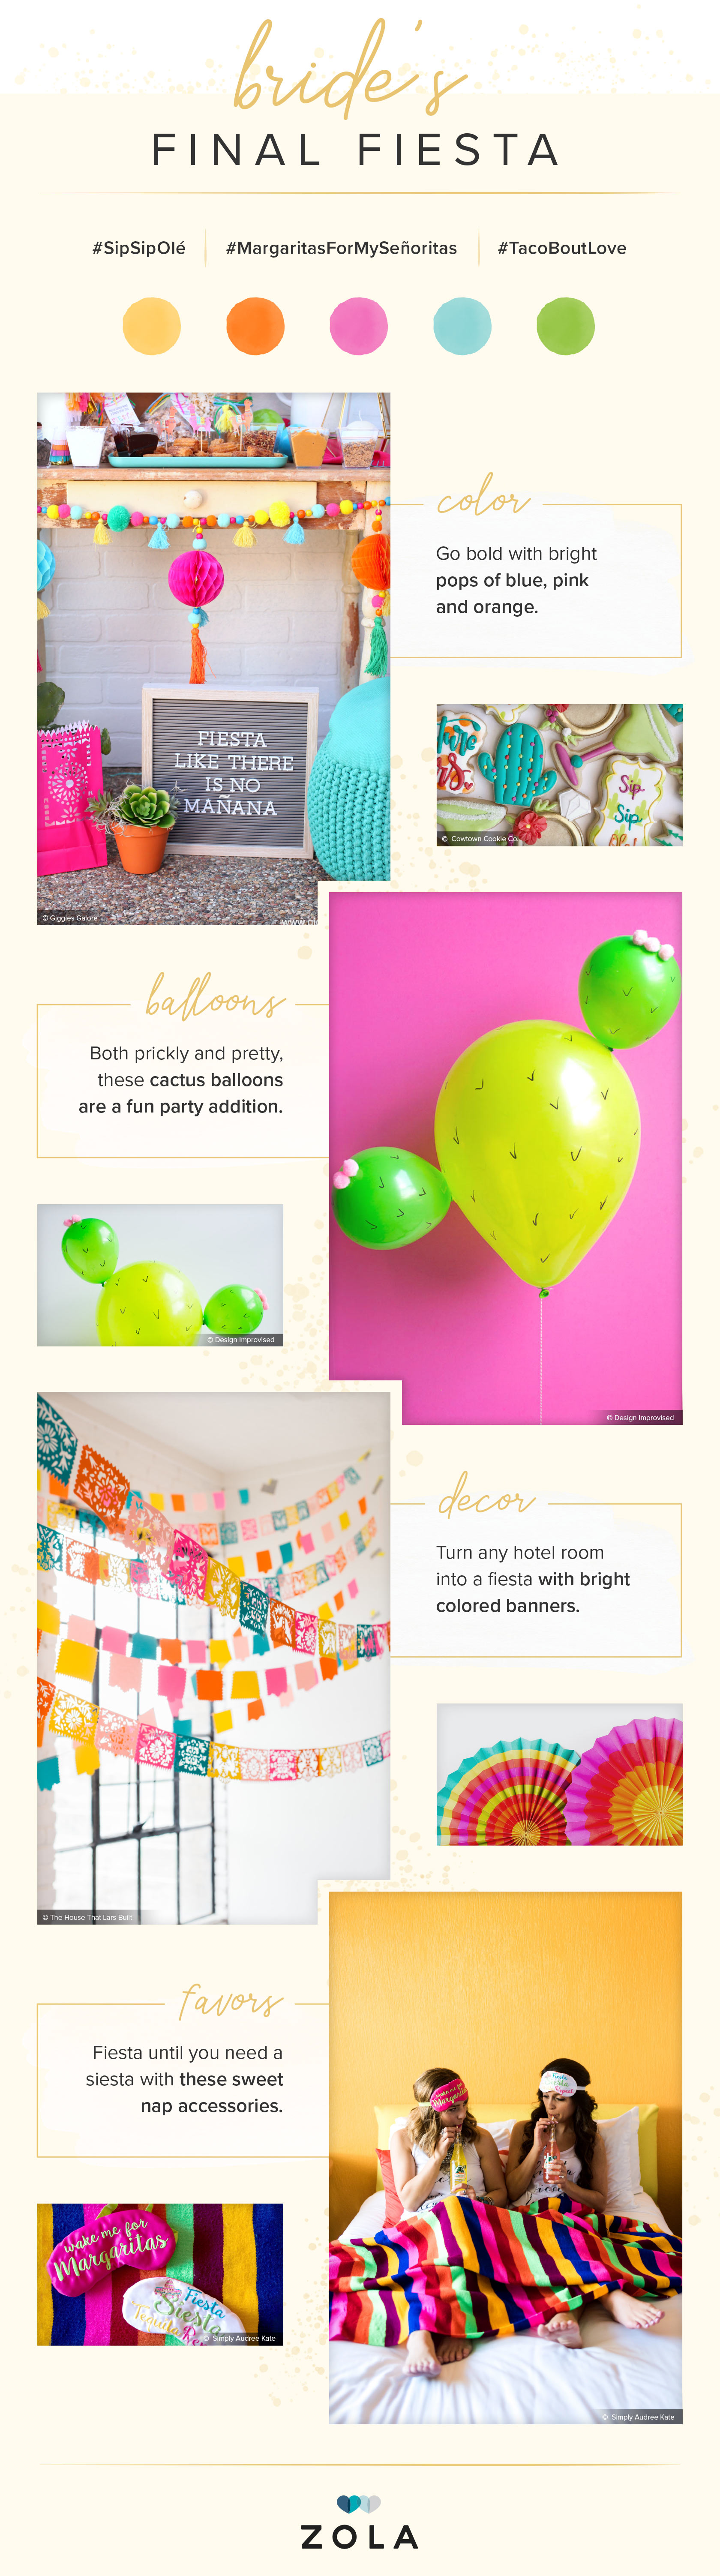 bachelorette-party-ideas-fiesta